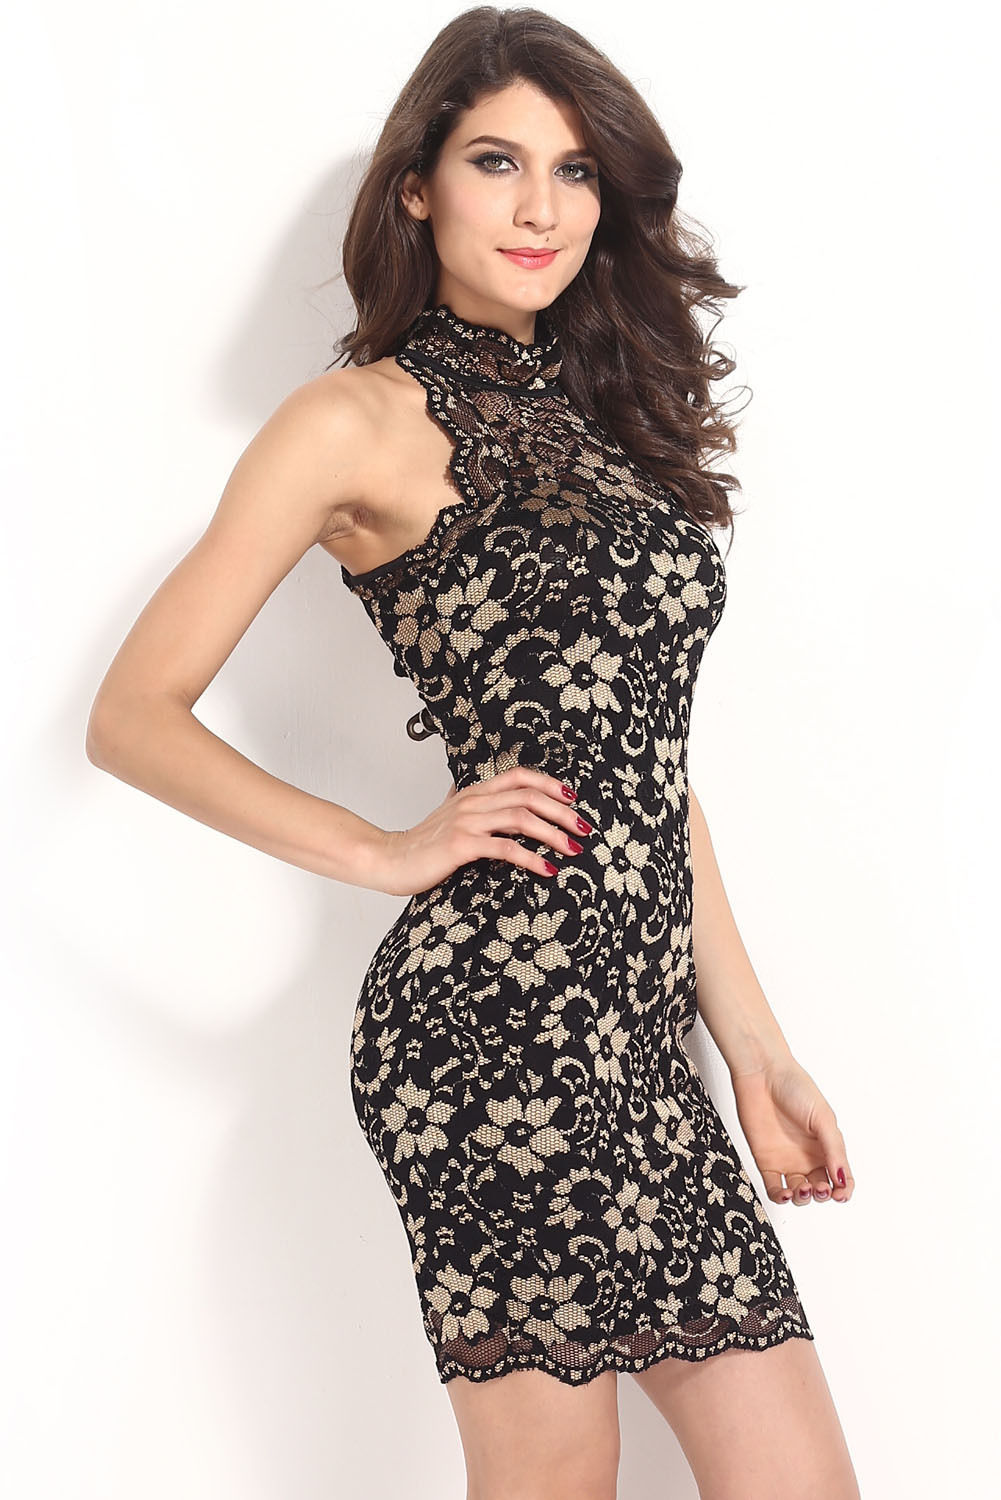 2015 New Hot Summer Women O-neck Sleeveless Dress Casual Halter Neck Vintage Lace Prom Party Wear Sheath Dresses